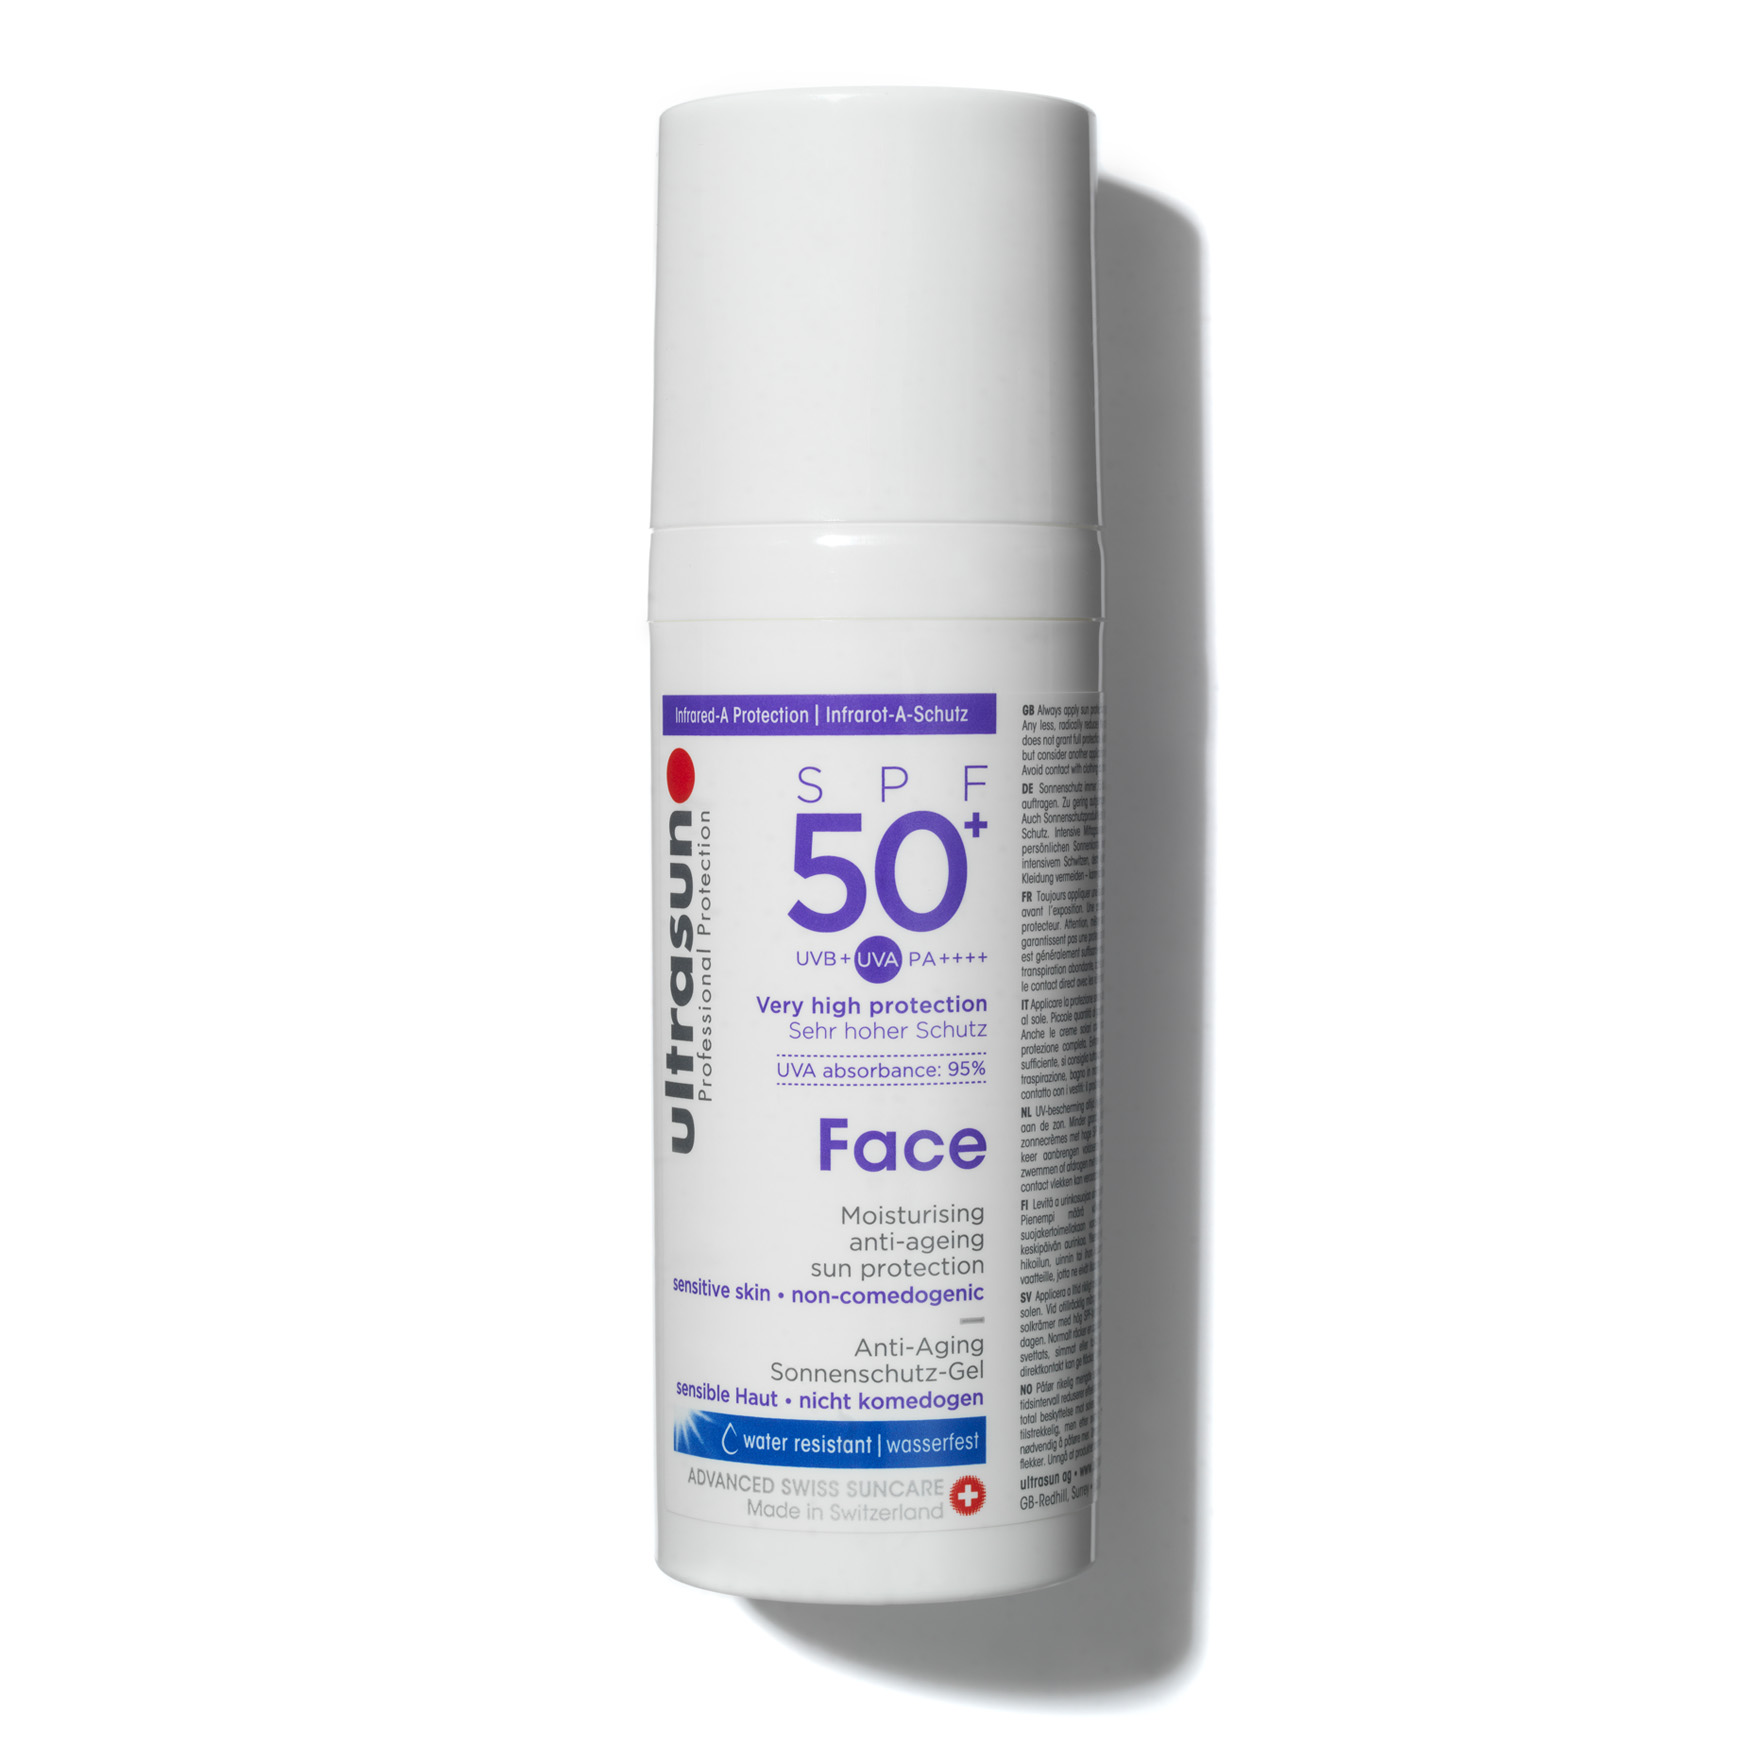 Face SPF50+, , large